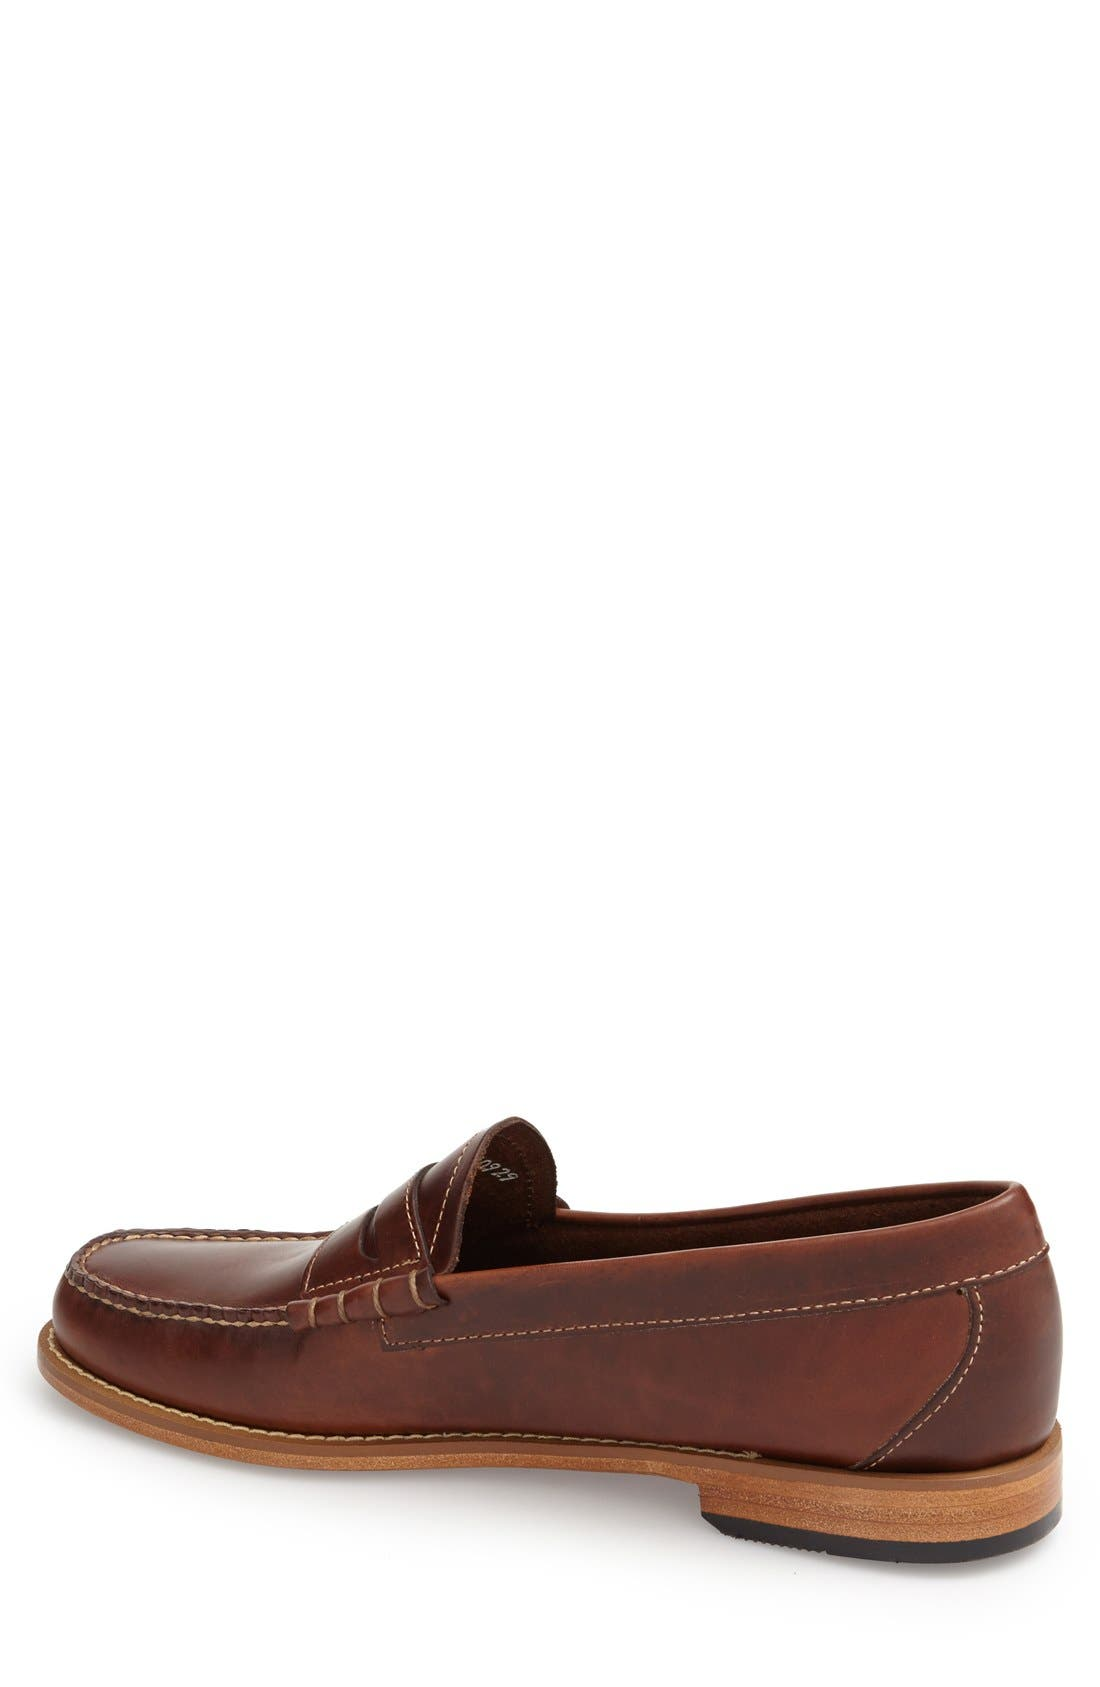 'Larson - Weejuns' Penny Loafer,                             Alternate thumbnail 2, color,                             Seahorse Leather